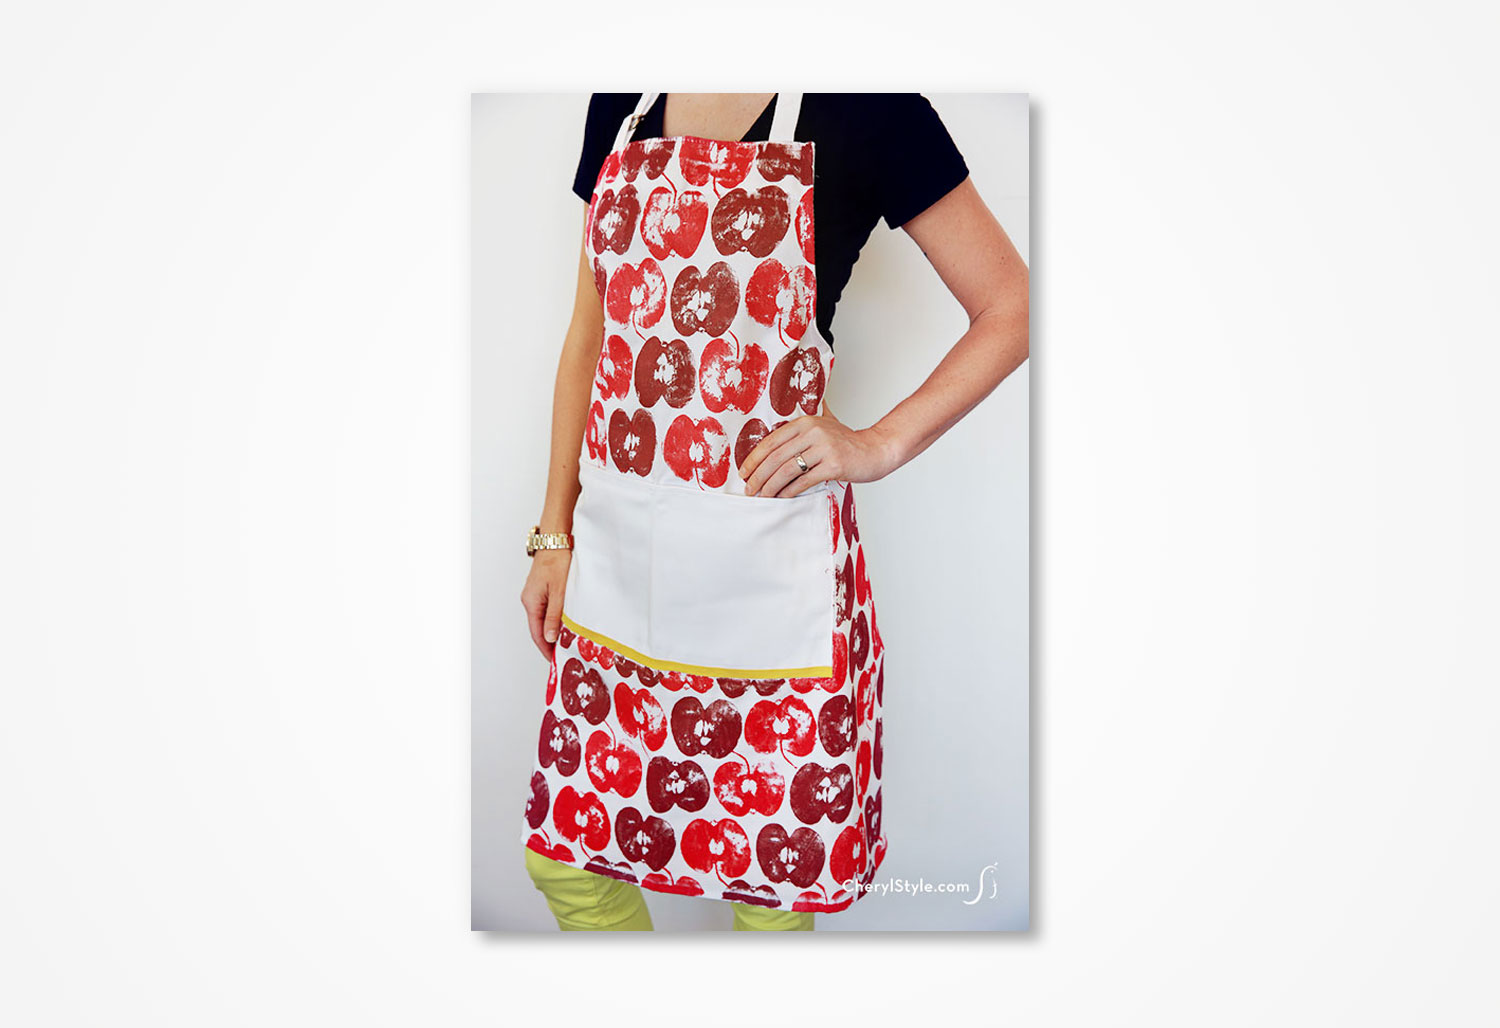 cs-apple-stamp-apron-1.jpg